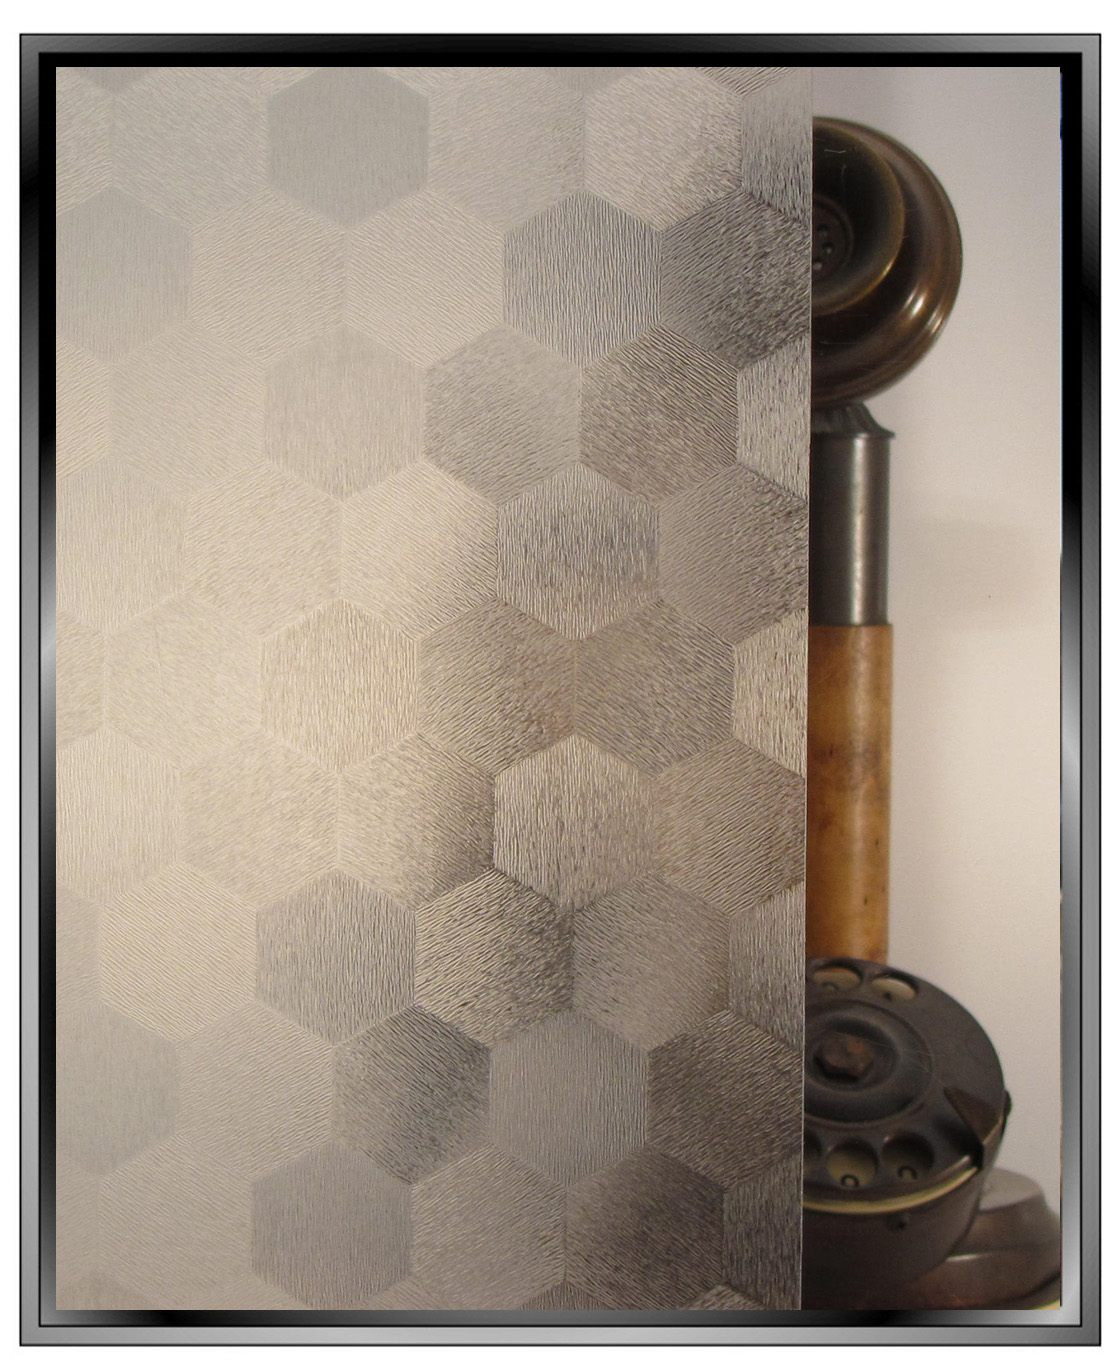 honeycomb hexagon texture pattern decorative privacy window film toronto